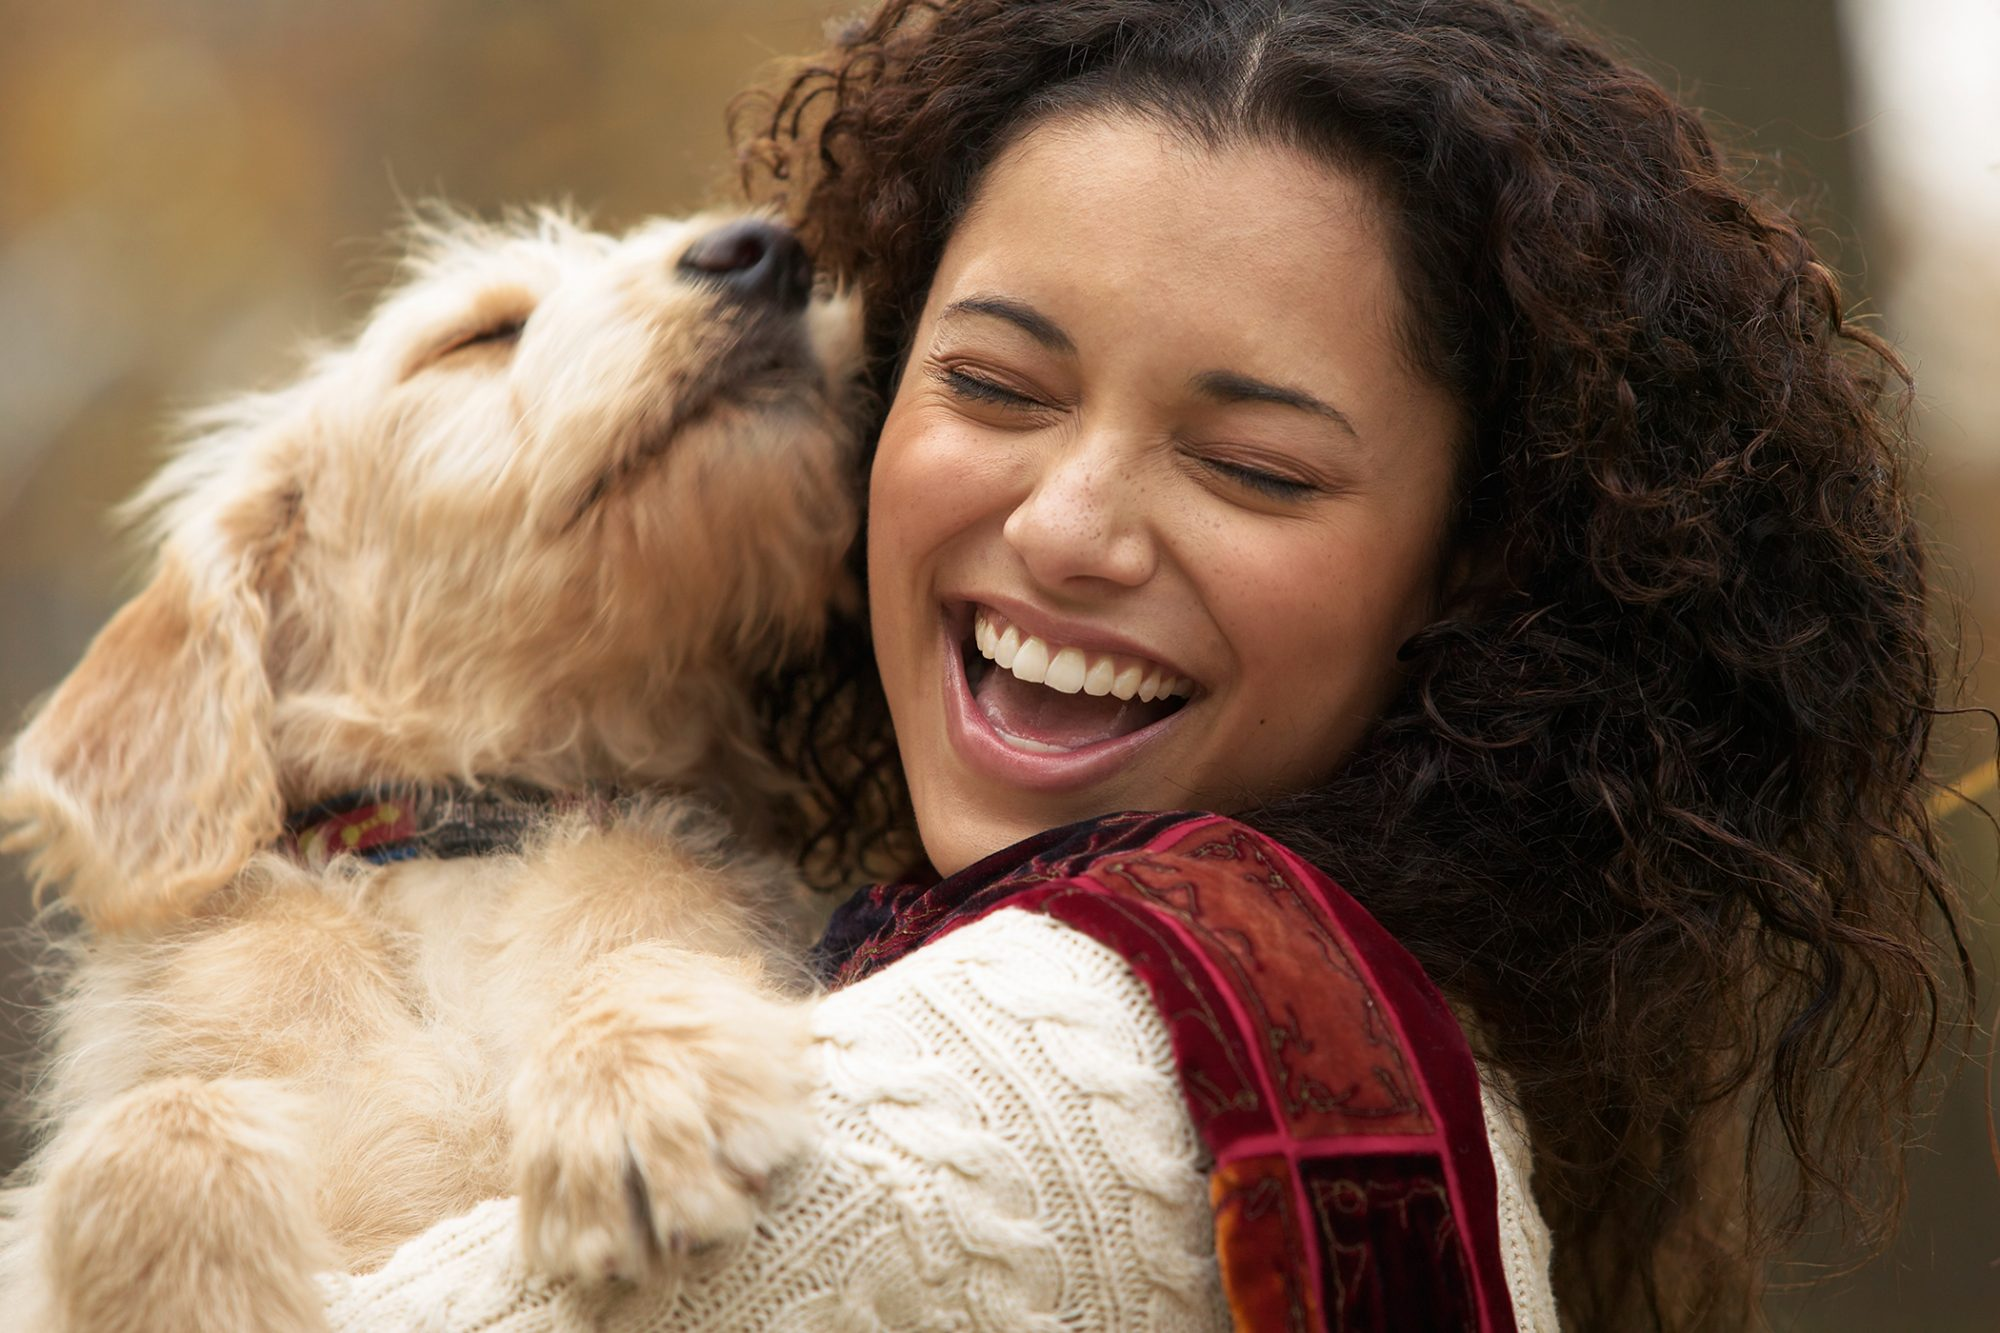 cute dog giving kisses to happy woman